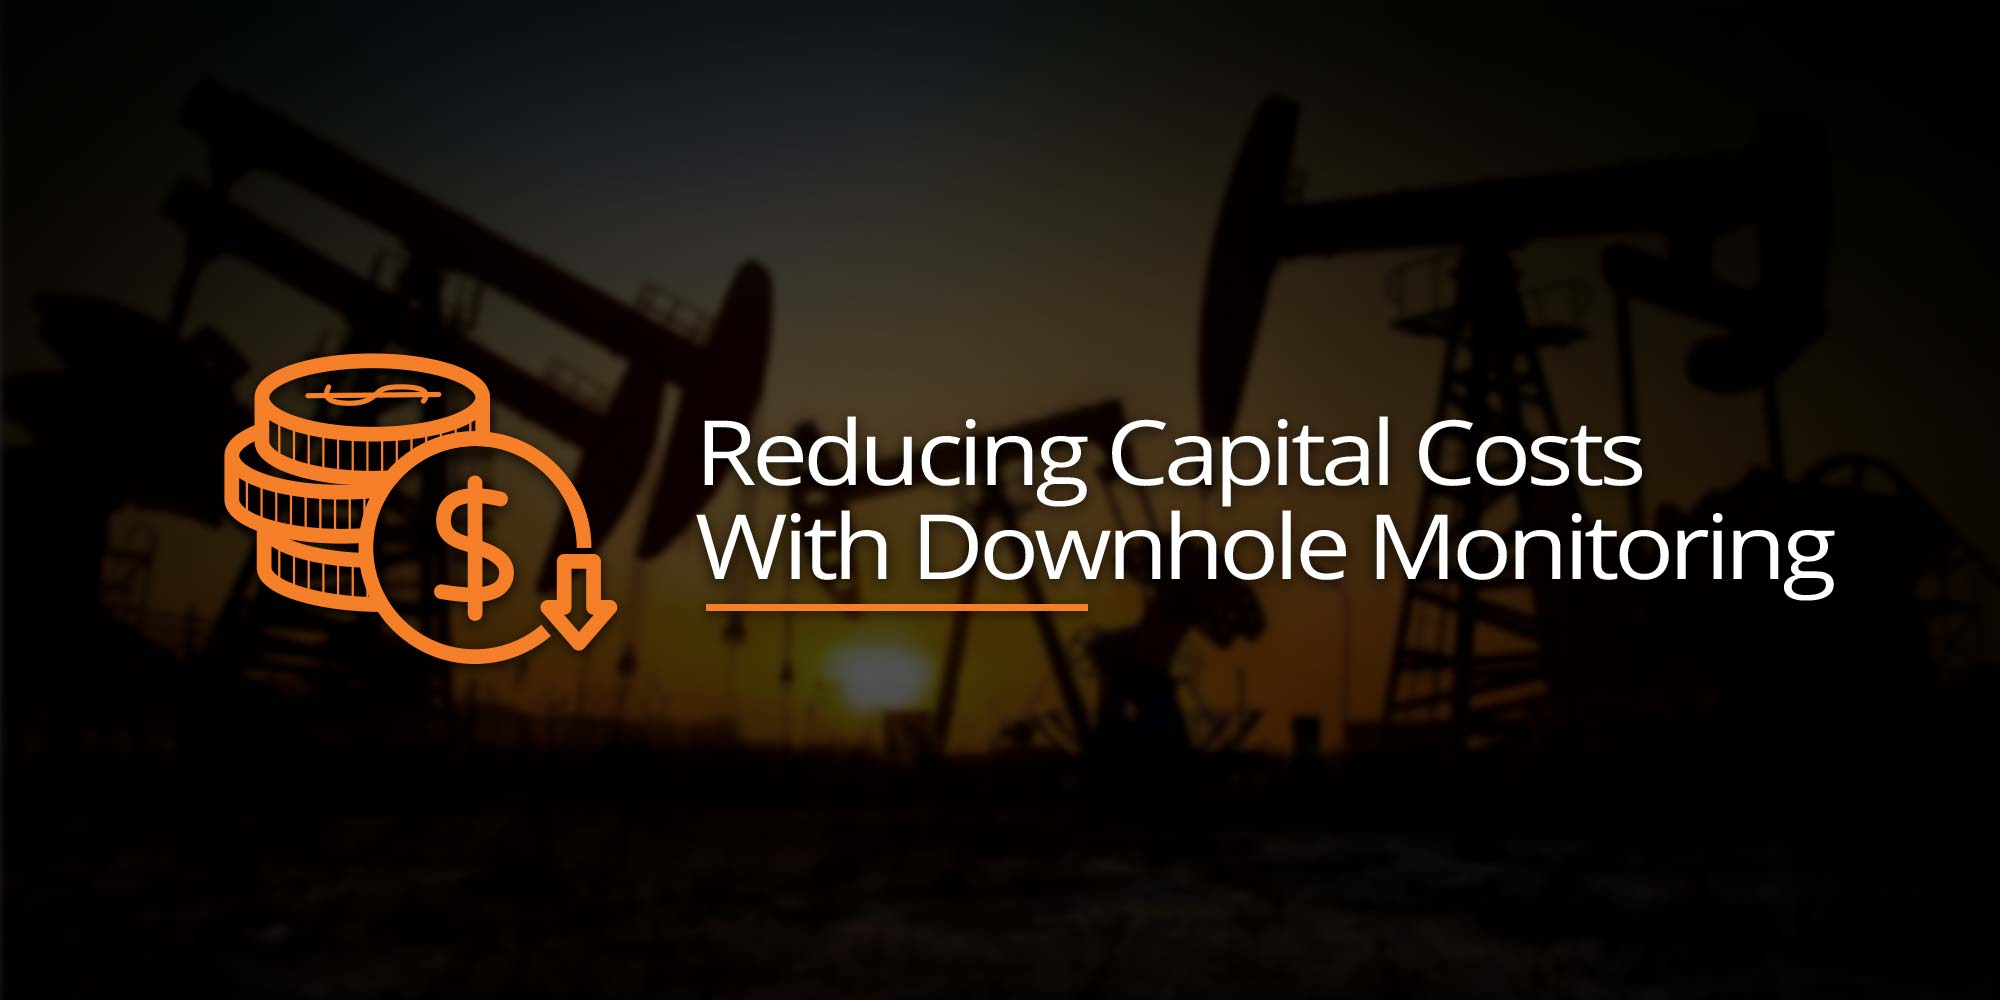 Reducing Capital Costs With Downhole Monitoring